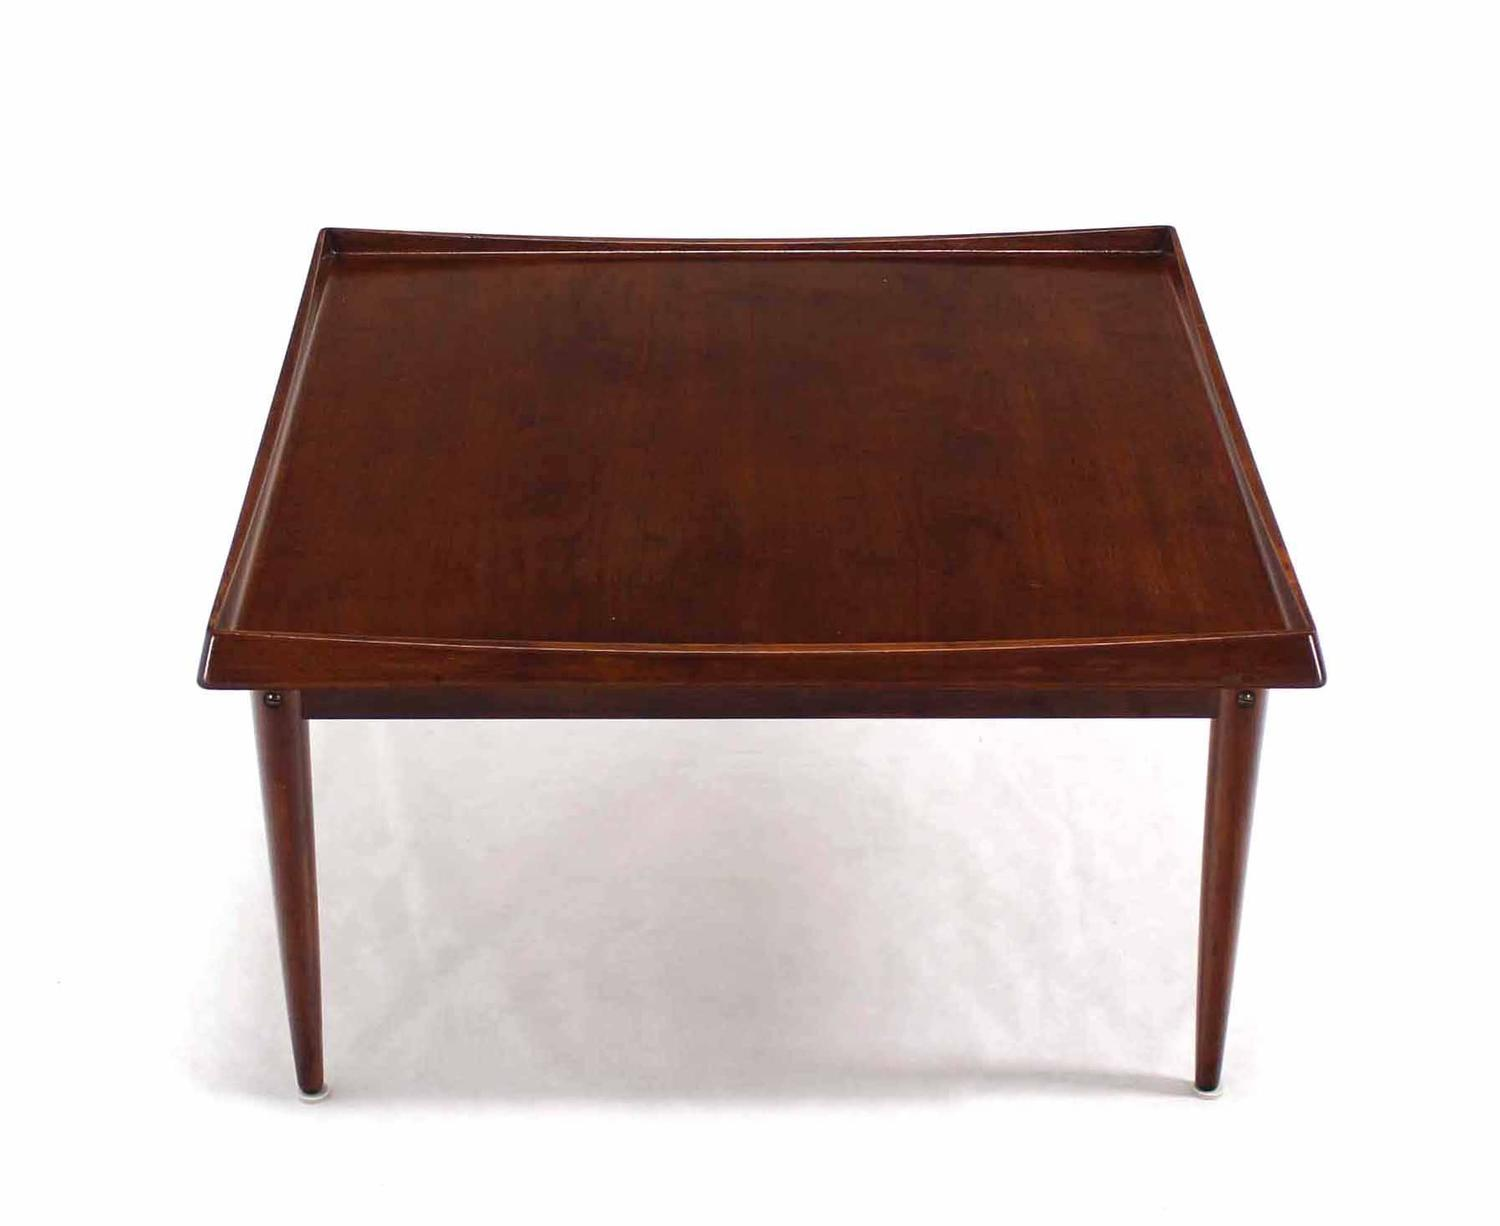 Square Rolled Edge Danish Modern Teak Coffee Table For Sale At 1stdibs